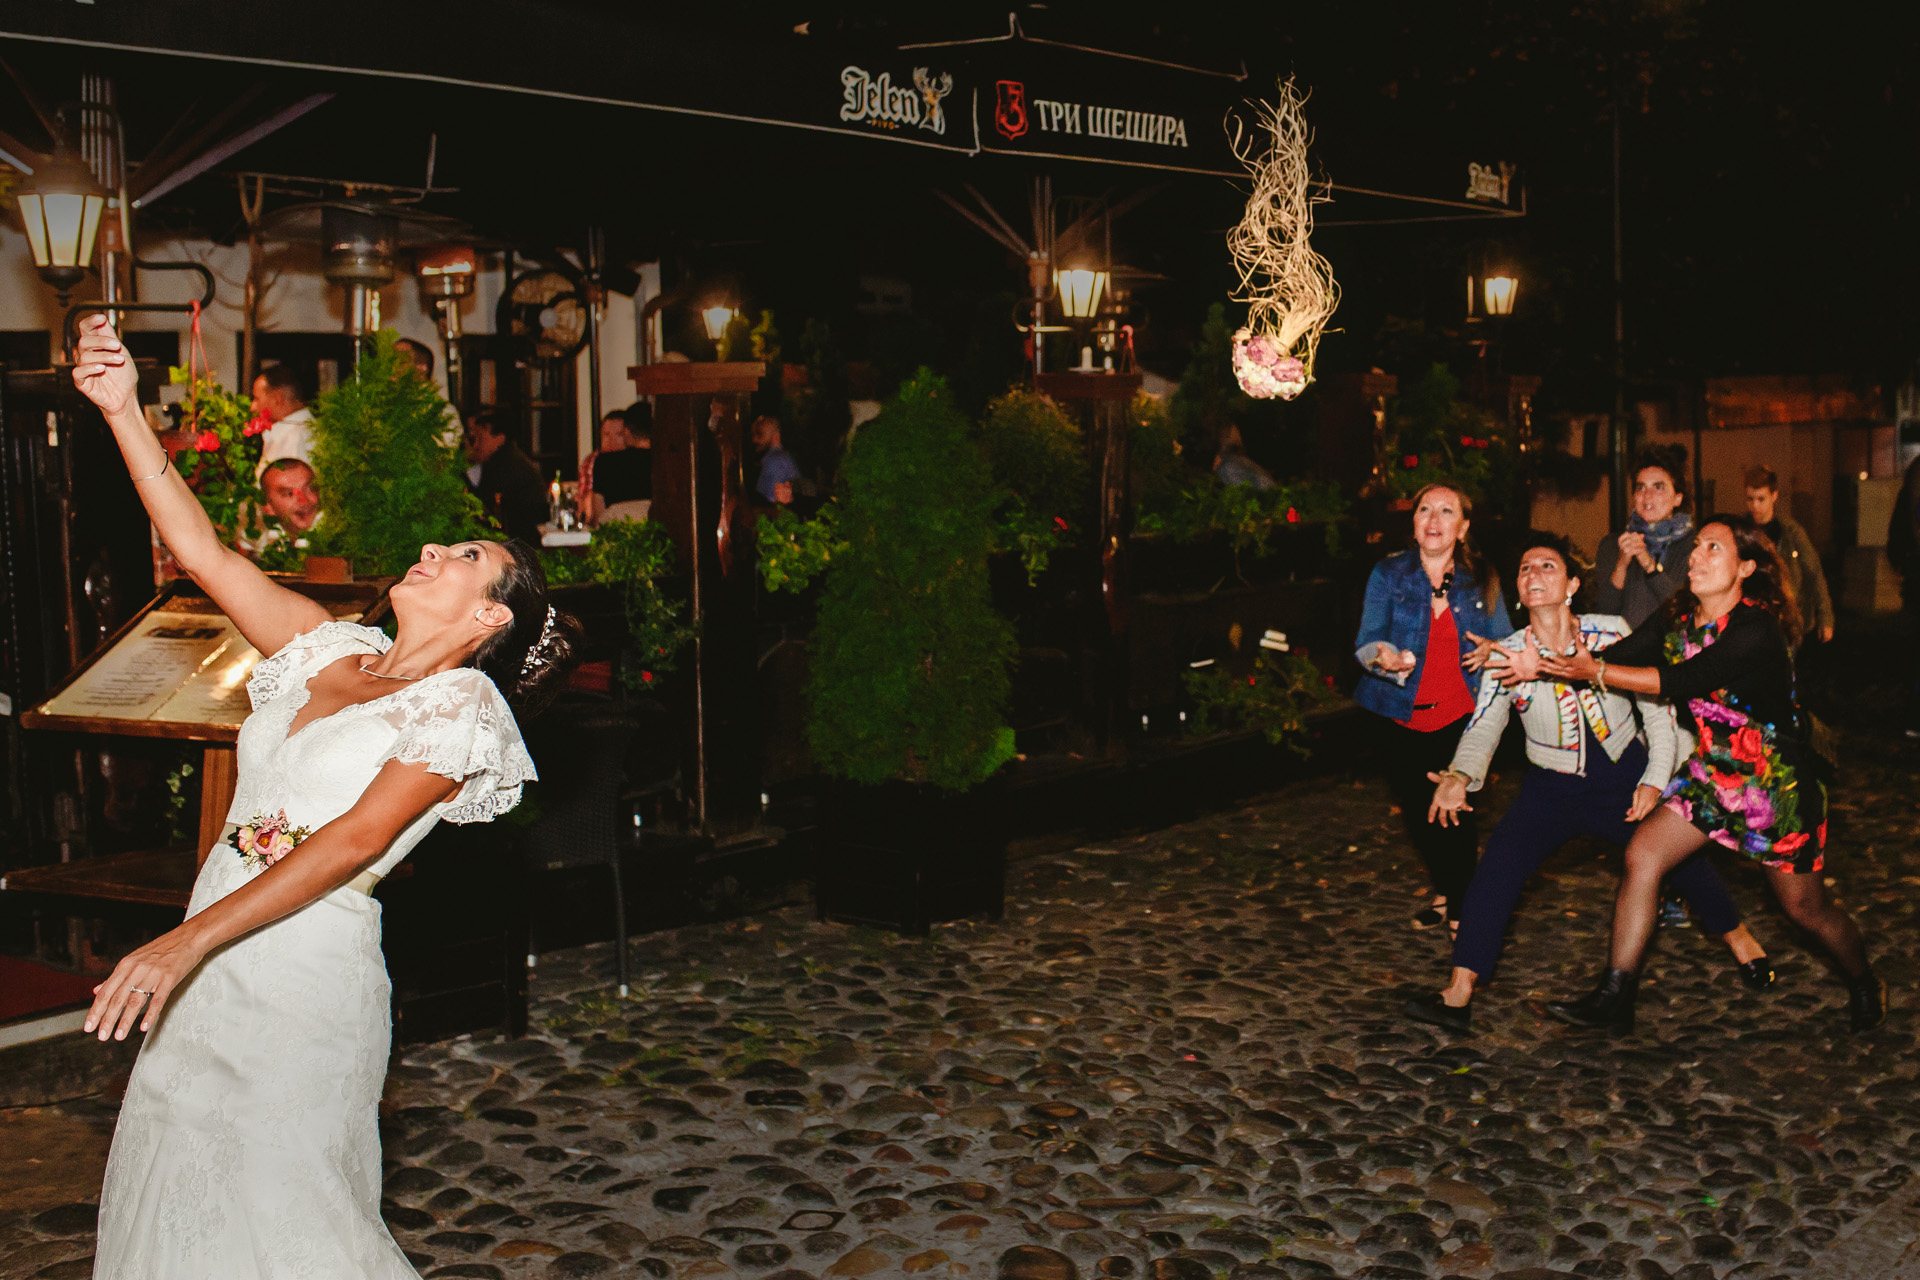 Serbia Elopement Wedding Party Celebration Photo | the bride threw her flowers to four single friends